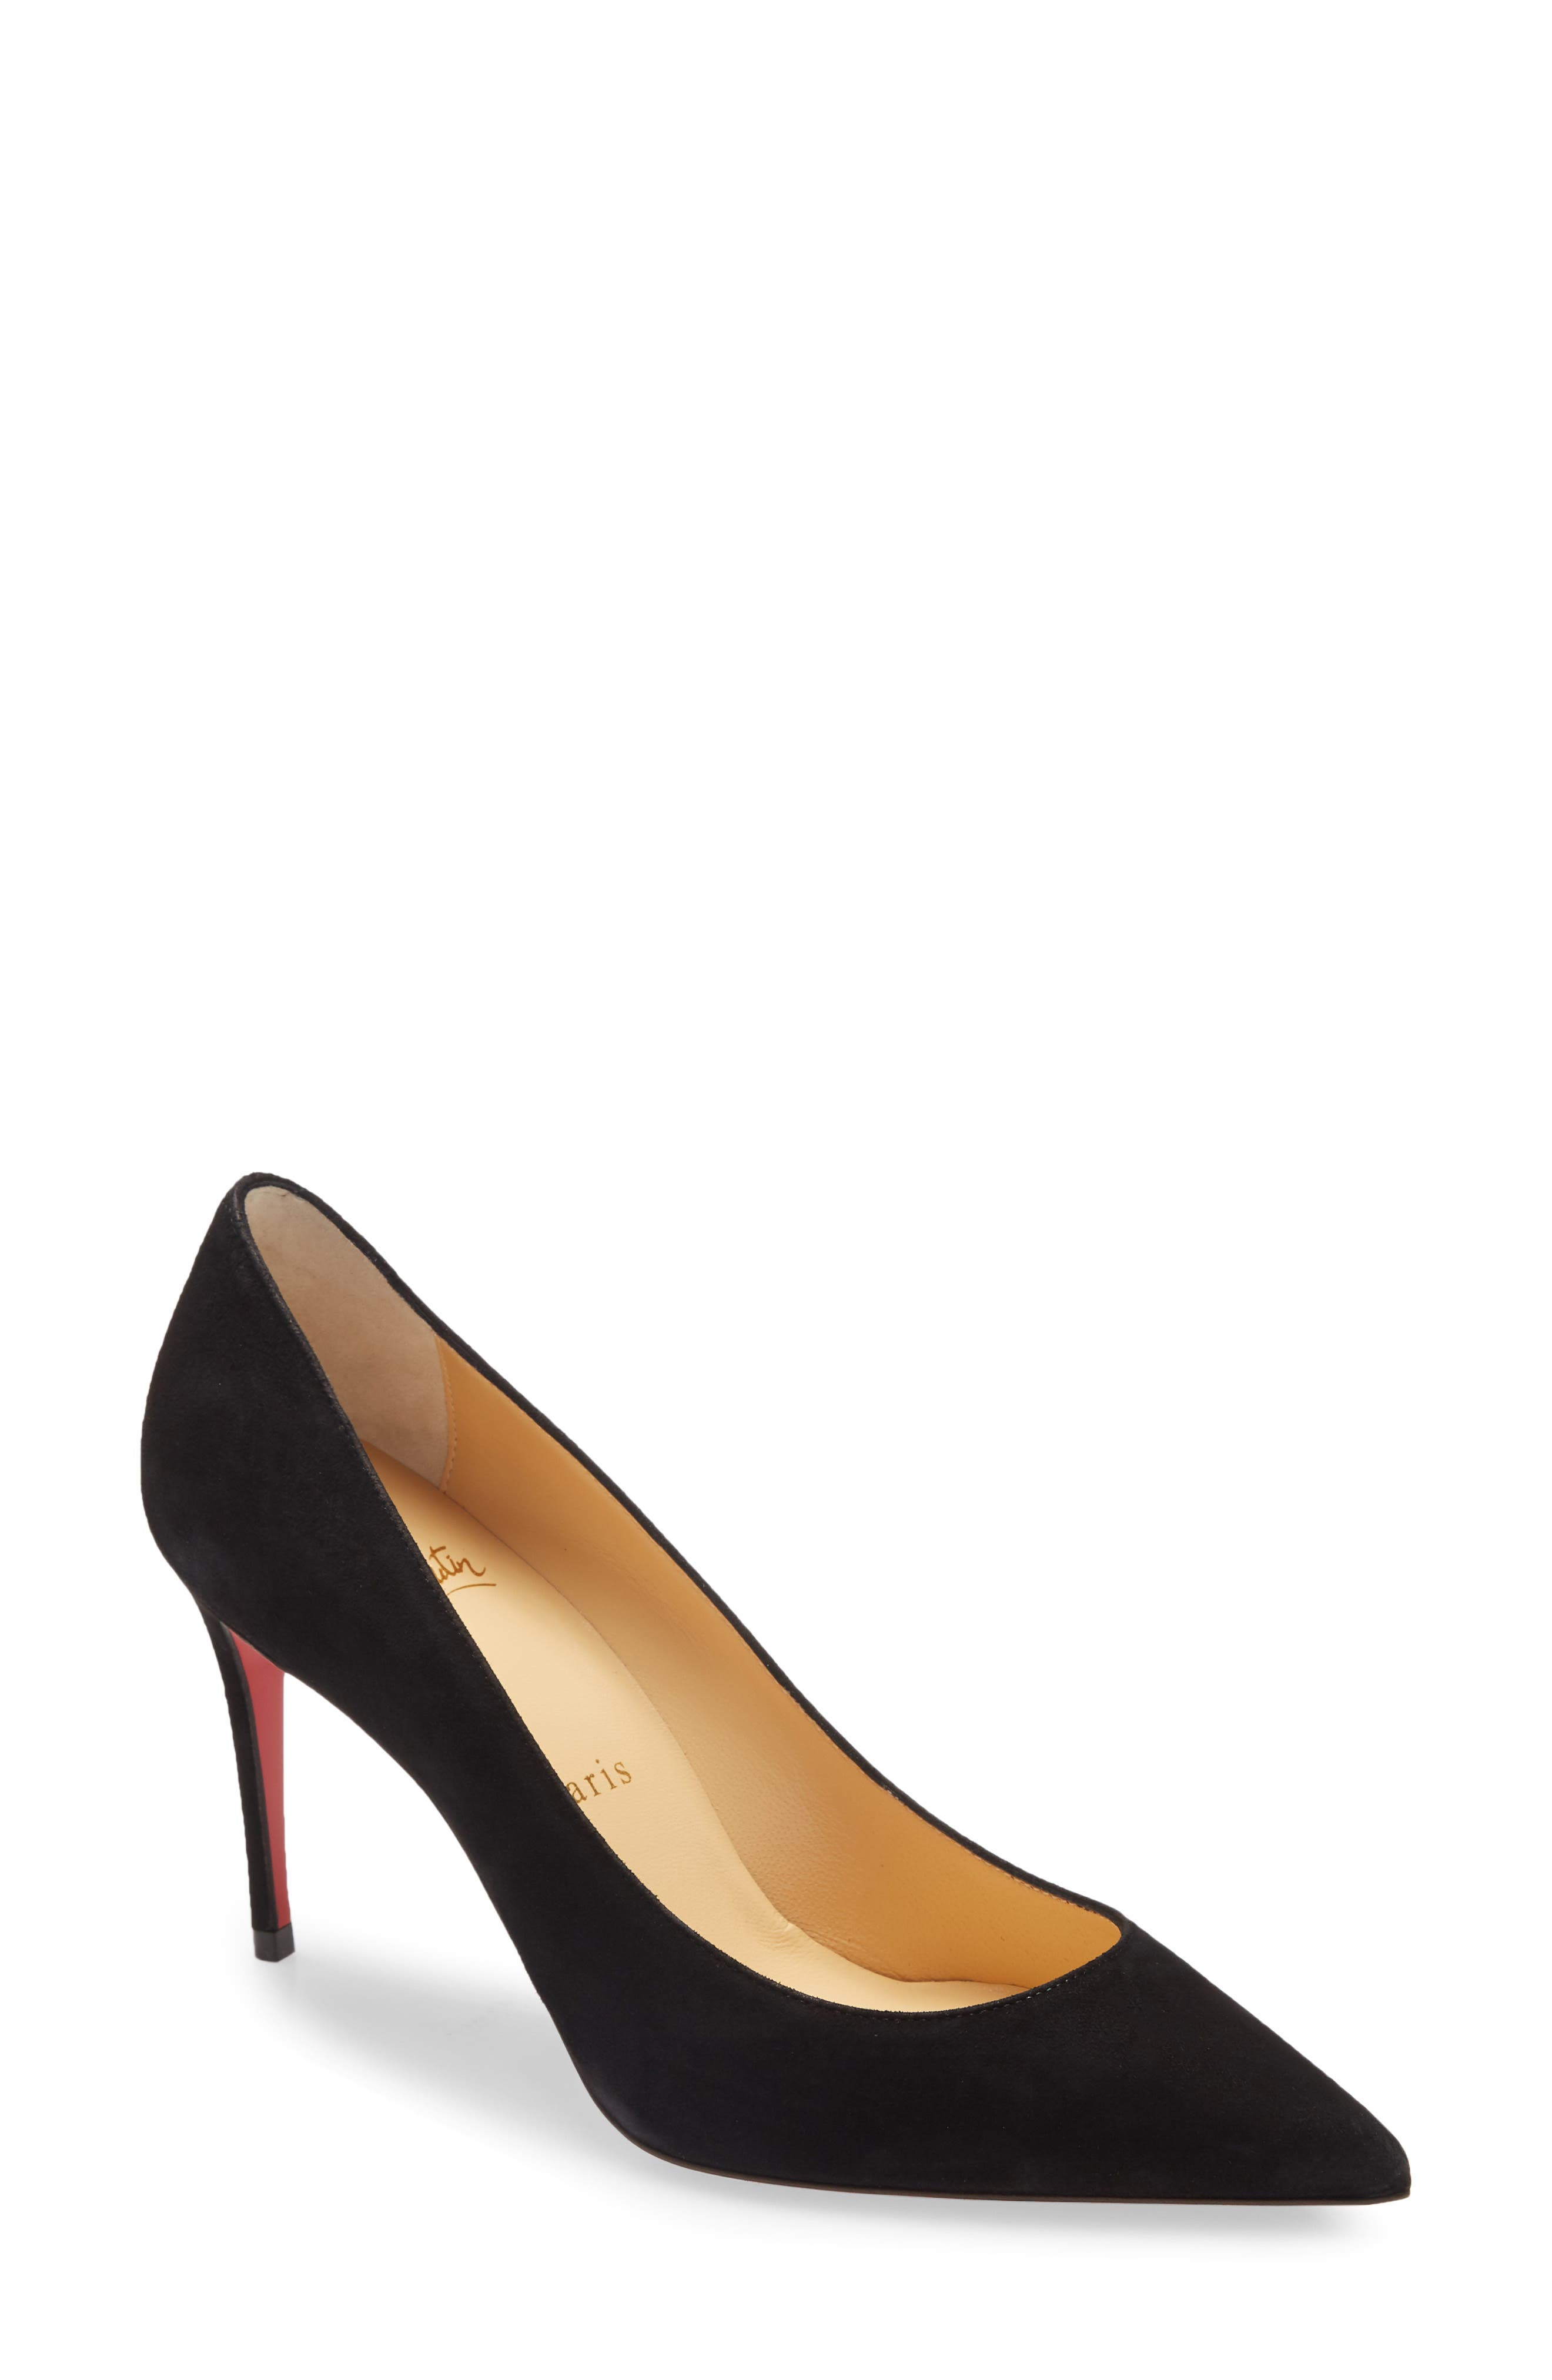 The maison\\\'s most iconic shoe, this pointy-toe suede pump is designed with a low-cut vamp that bares the foot with subtlety and a bit of sensuality. Style Name: Christian Louboutin Kate Pointed Toe Pump (Women). Style Number: 6046898. Available in stores.